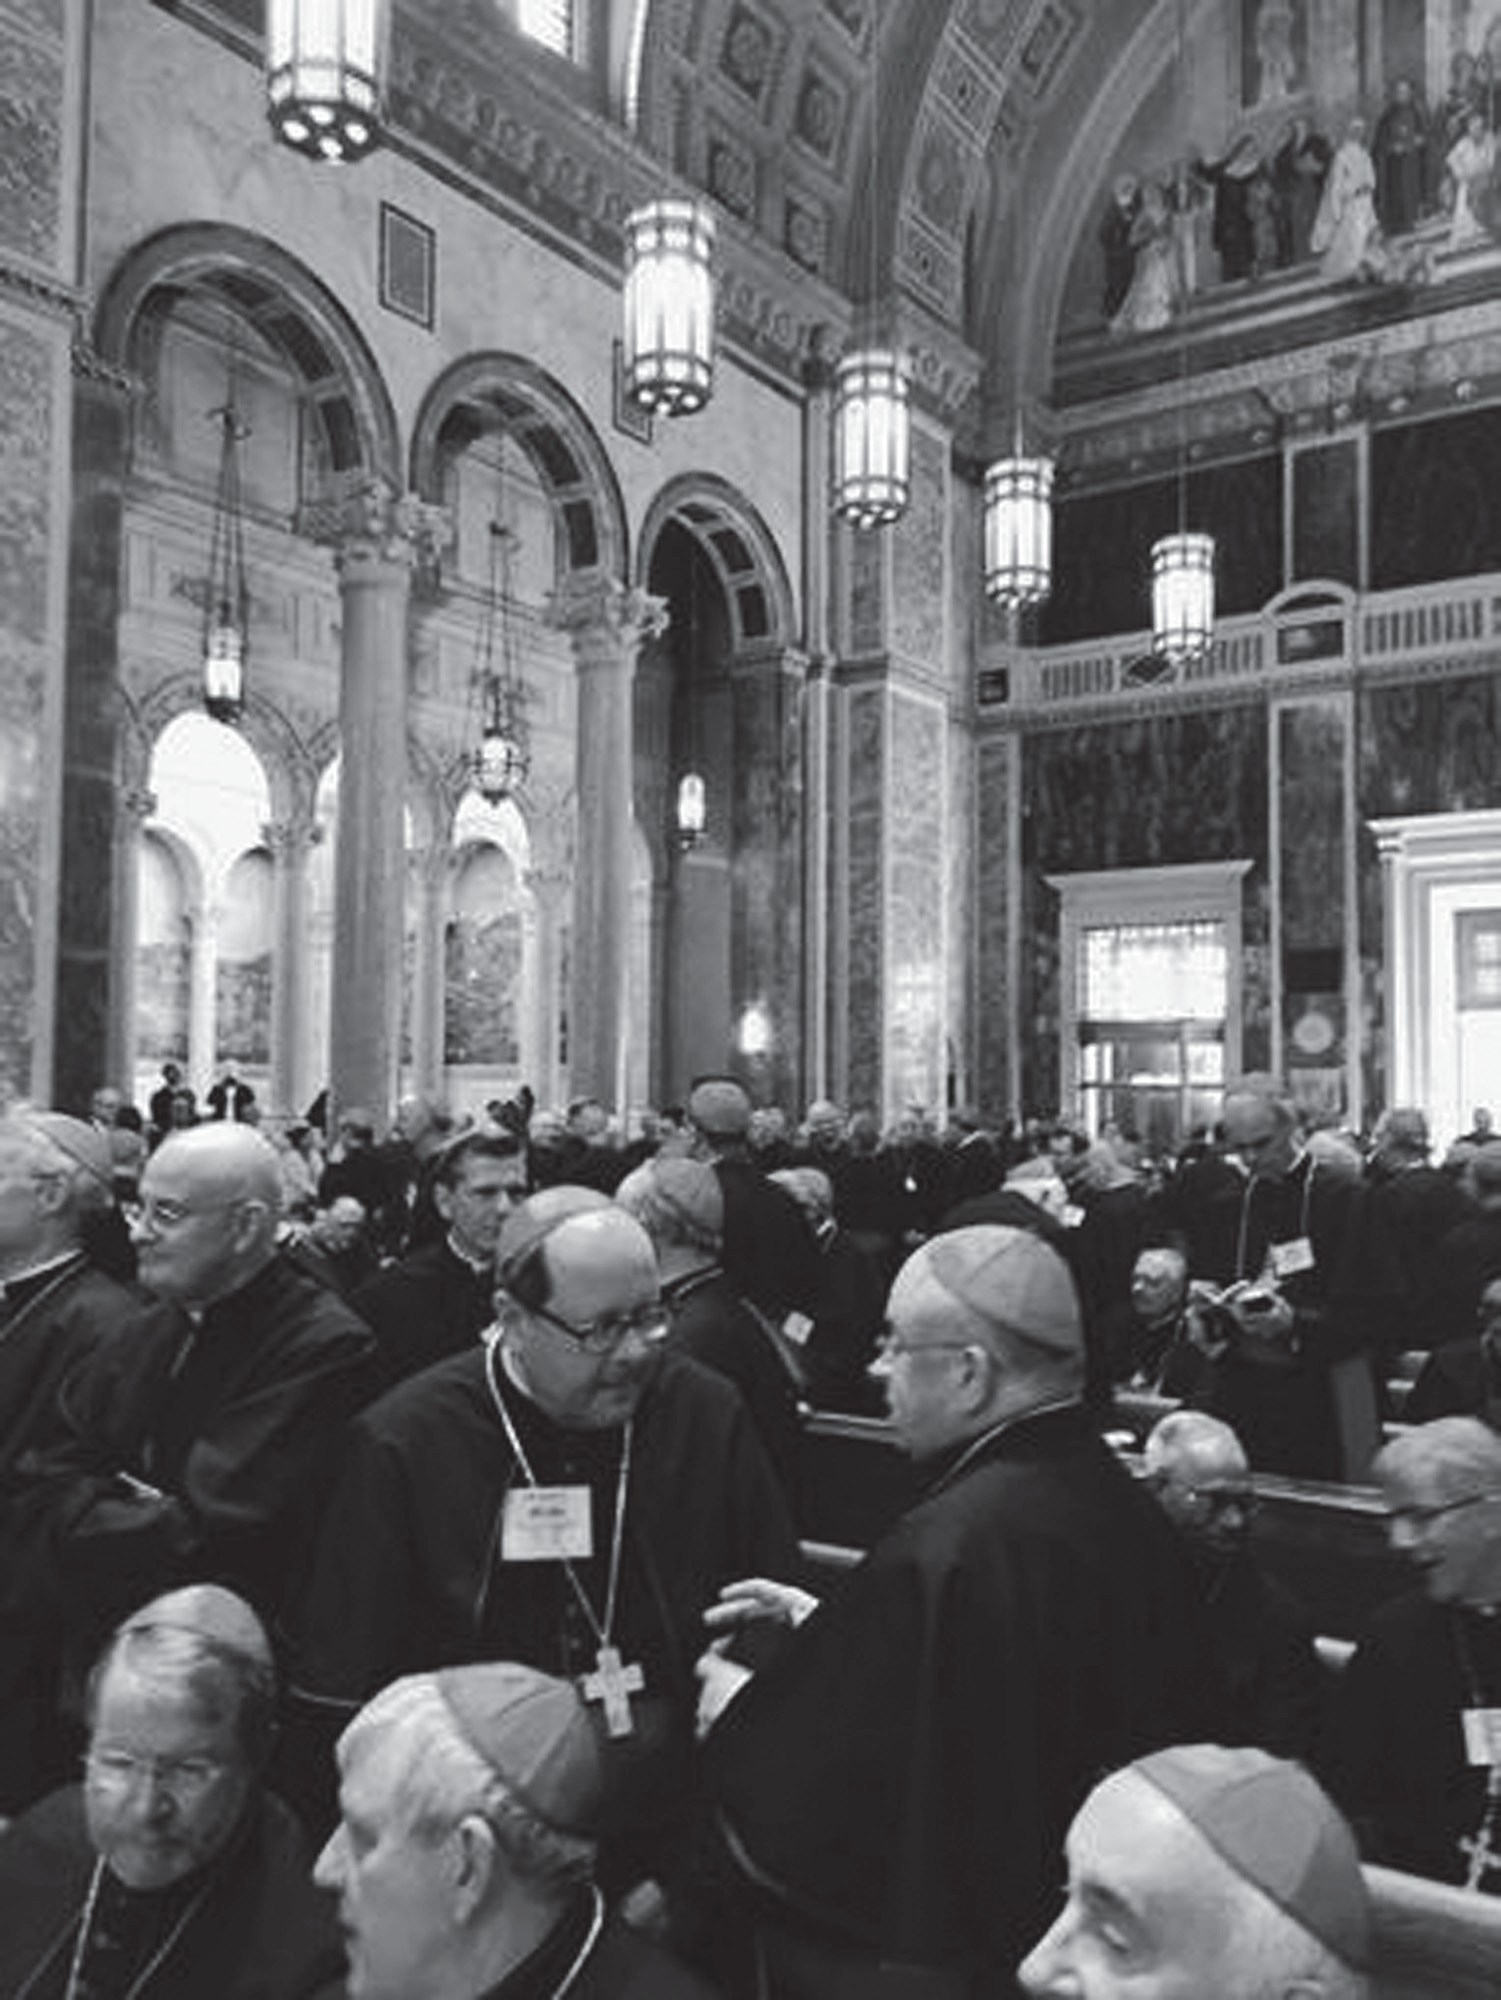 Bishop Robert P. Deeley of the Roman Catholic Diocese of Portland and the other U.S. bishops joined Pope Francis for midday prayer at St. Matthew's Cathedral in Washington, D.C. on Wednesday morning. Here, Deeley is pictured at the cathedral speaking with the other bishops.